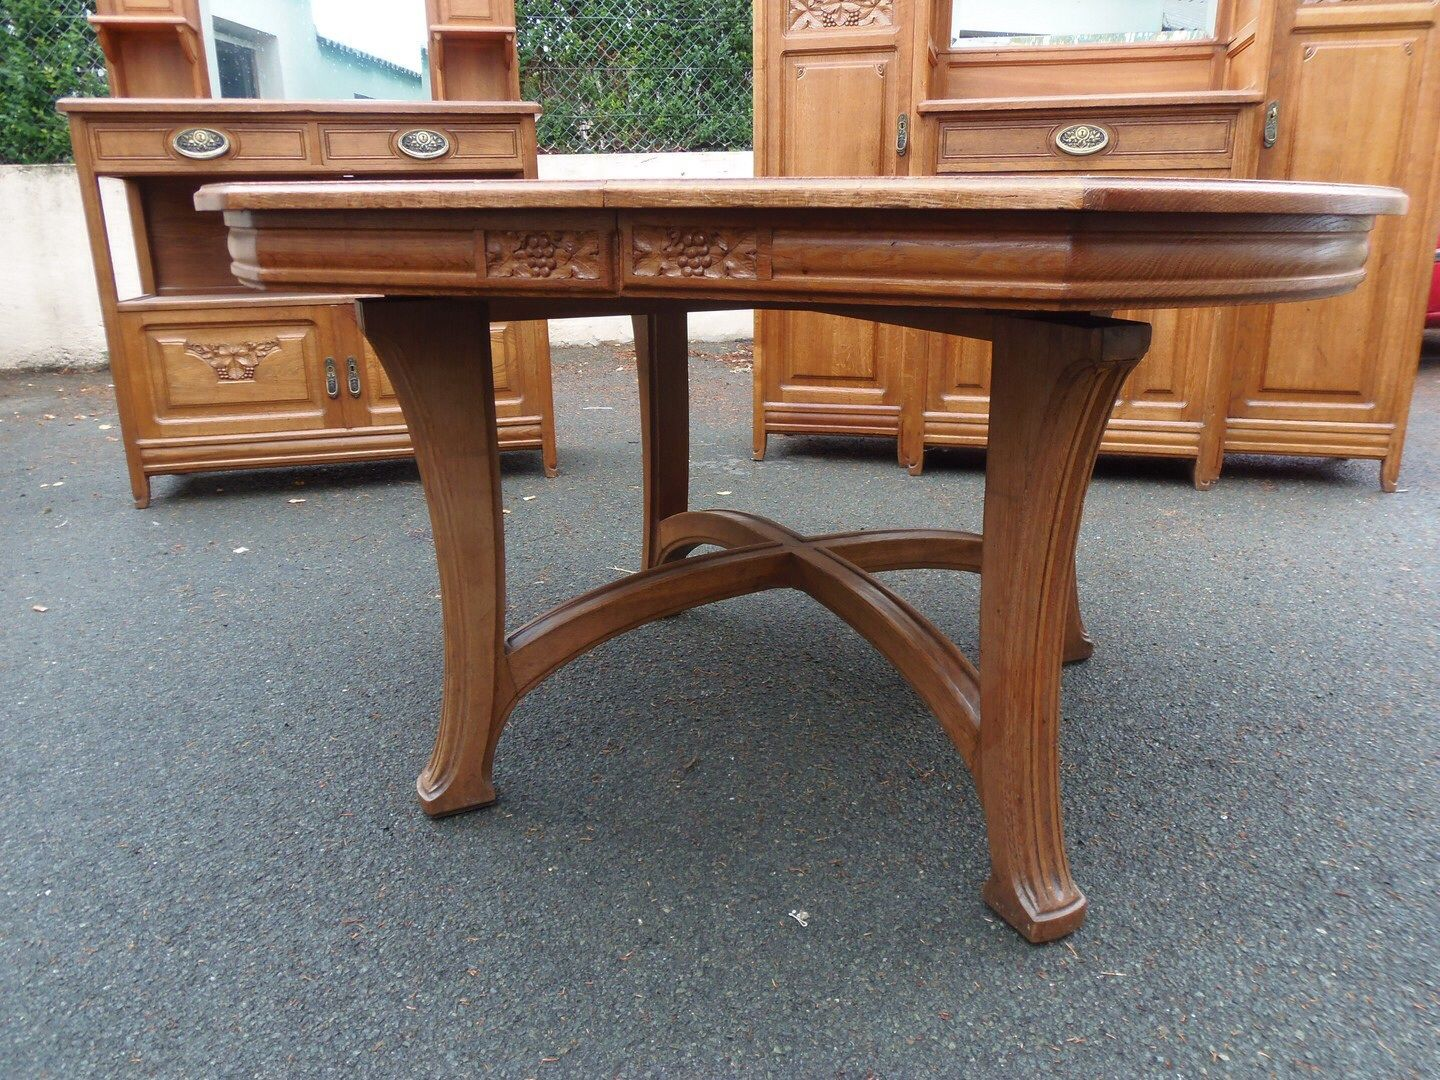 Gauthier Poinsignon Dining Room Table Gauthier Poinsignon  # Meuble Tv Oldy